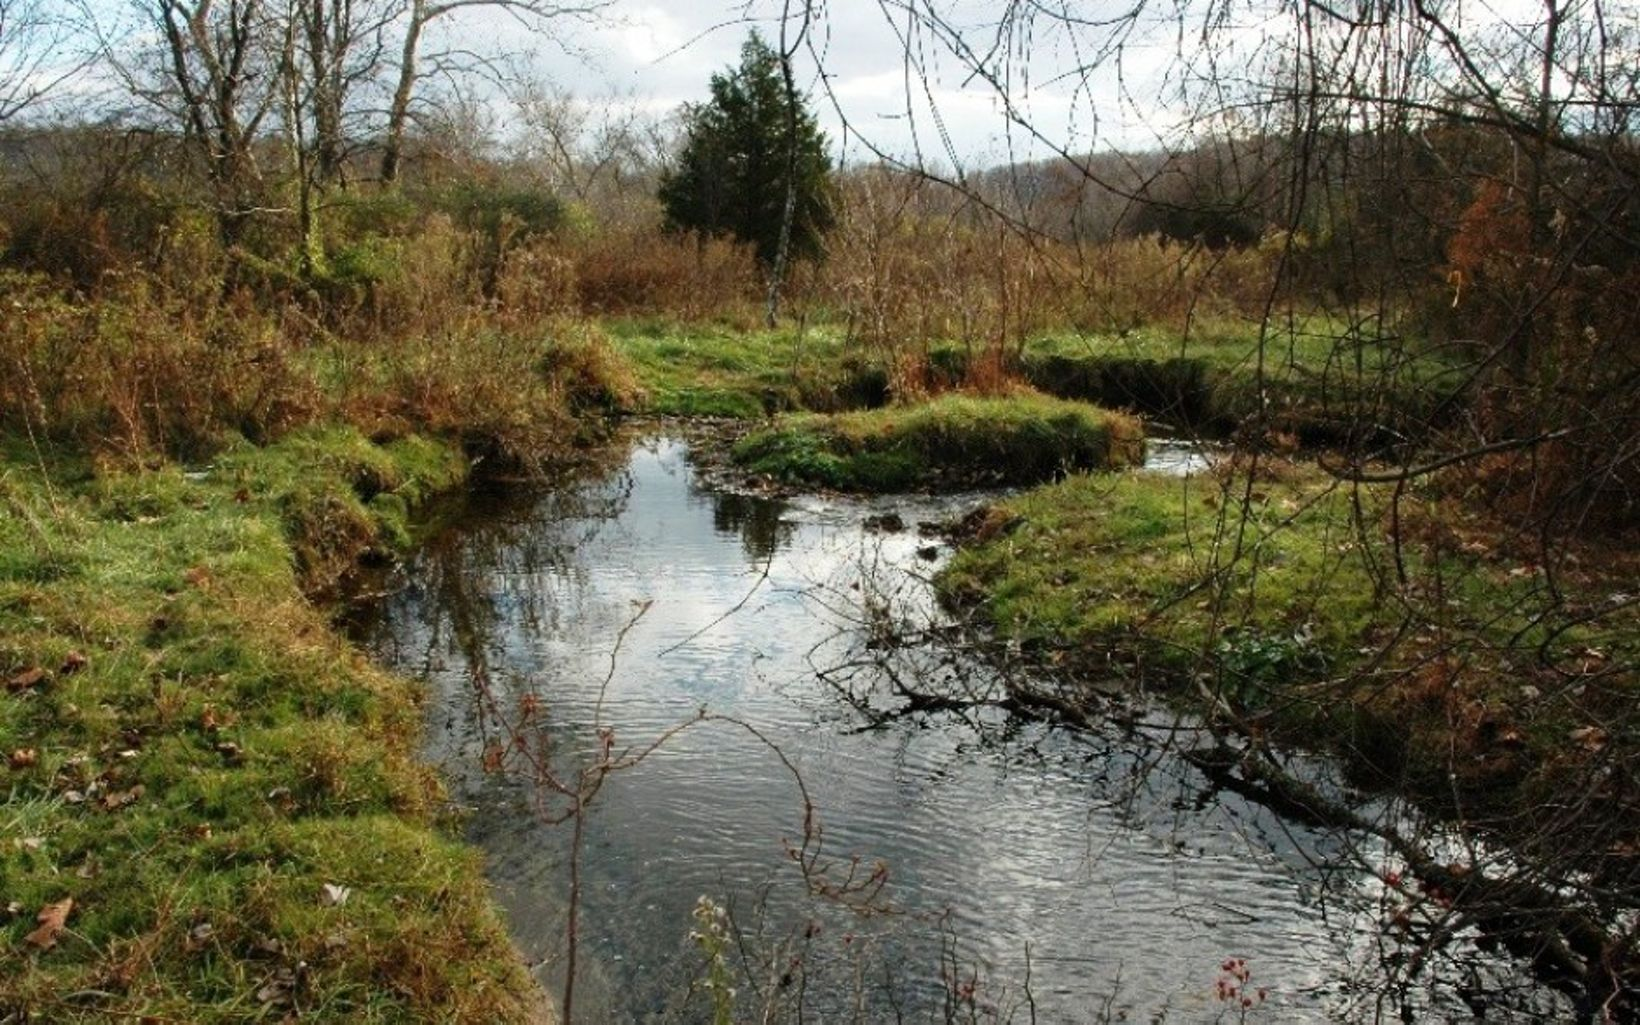 A stream flows through a grassy landscape.